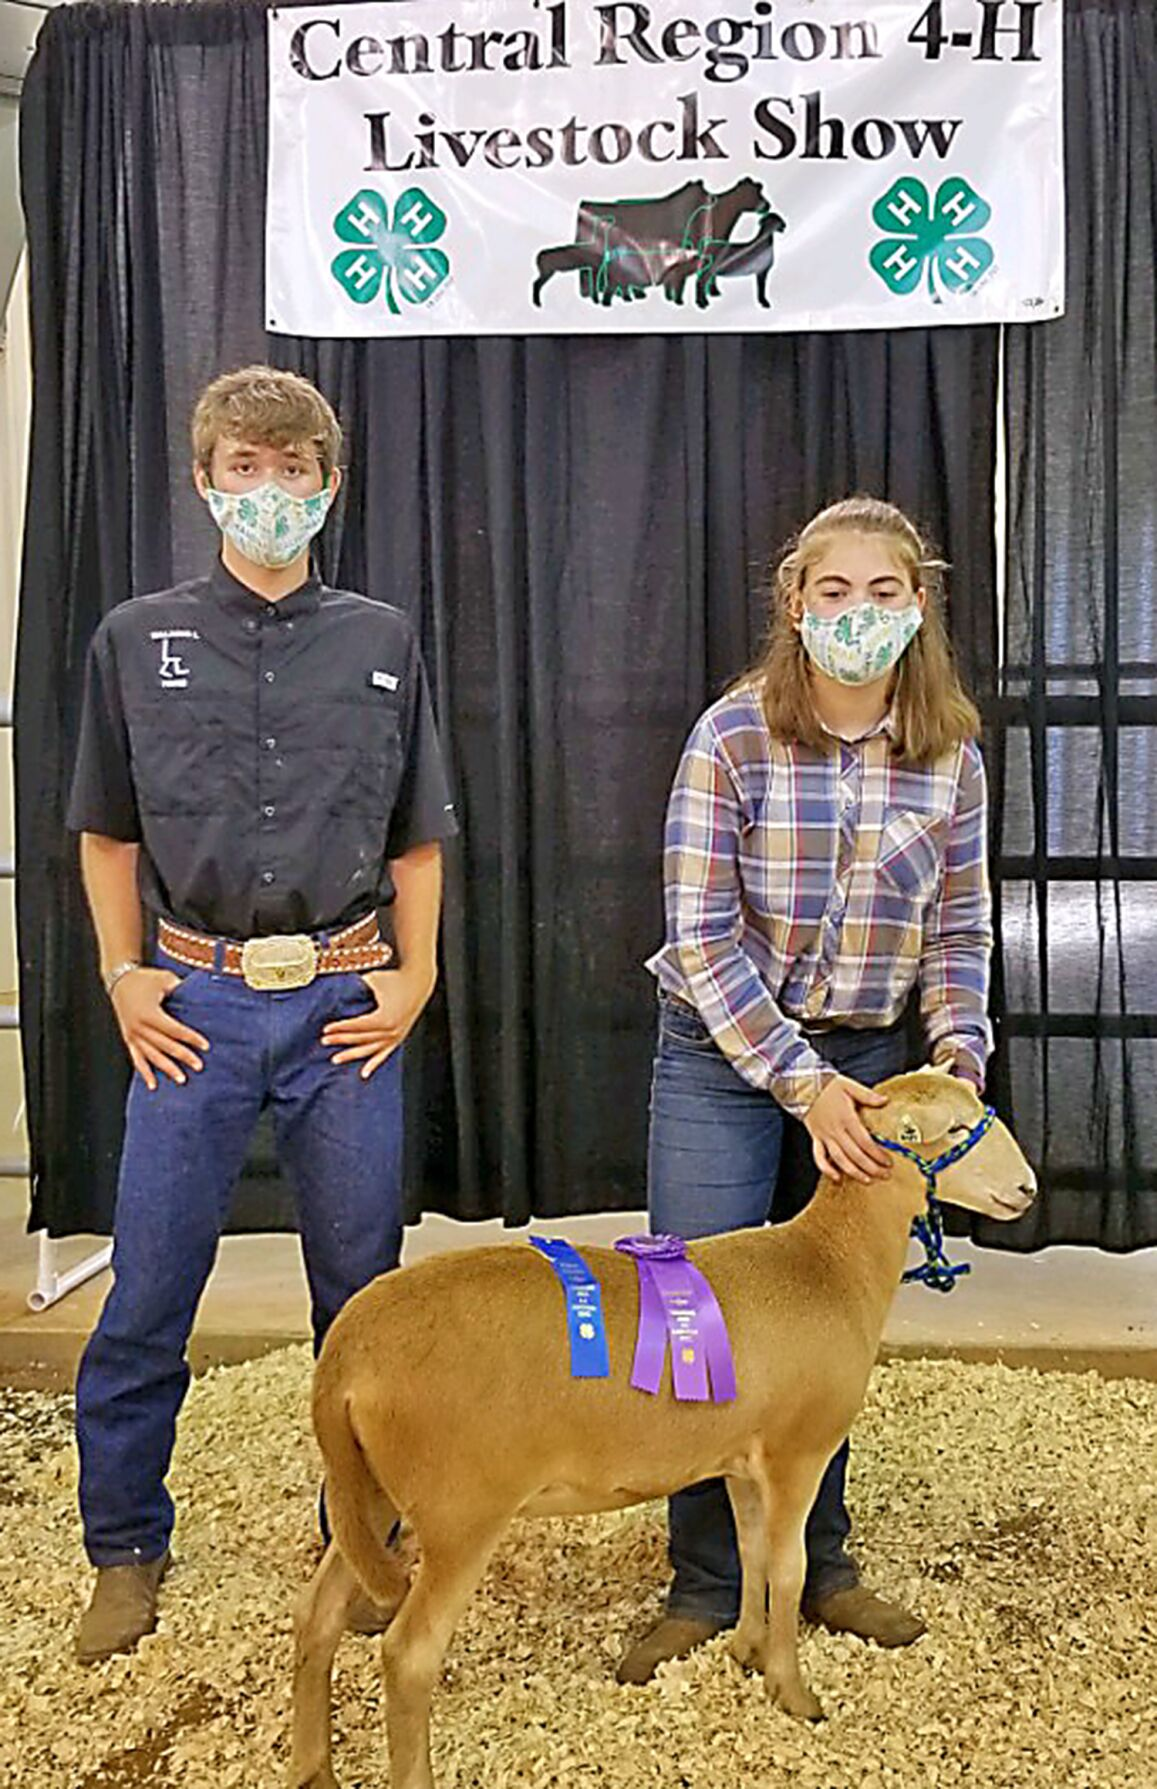 Calum Lavacot's Grand Champ Katahdin Ewe at Central Region 4-H Sheep Expo exhibited by Gately Pfeiffer web.png